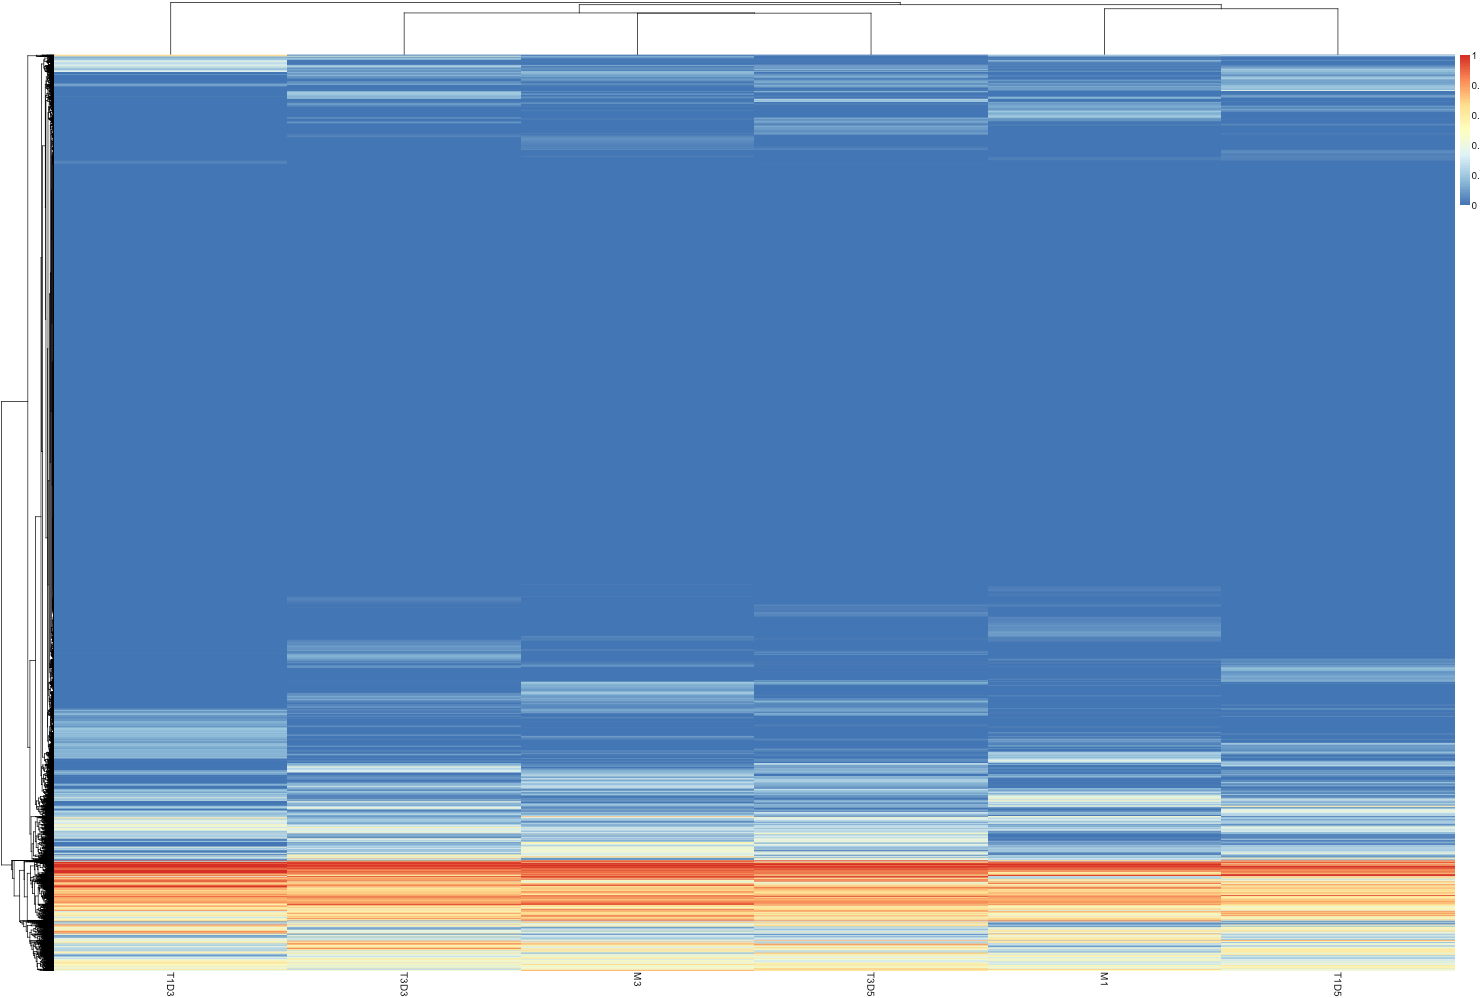 creating 5x coverage file for pheatmap analysis | Claire's lab notebook